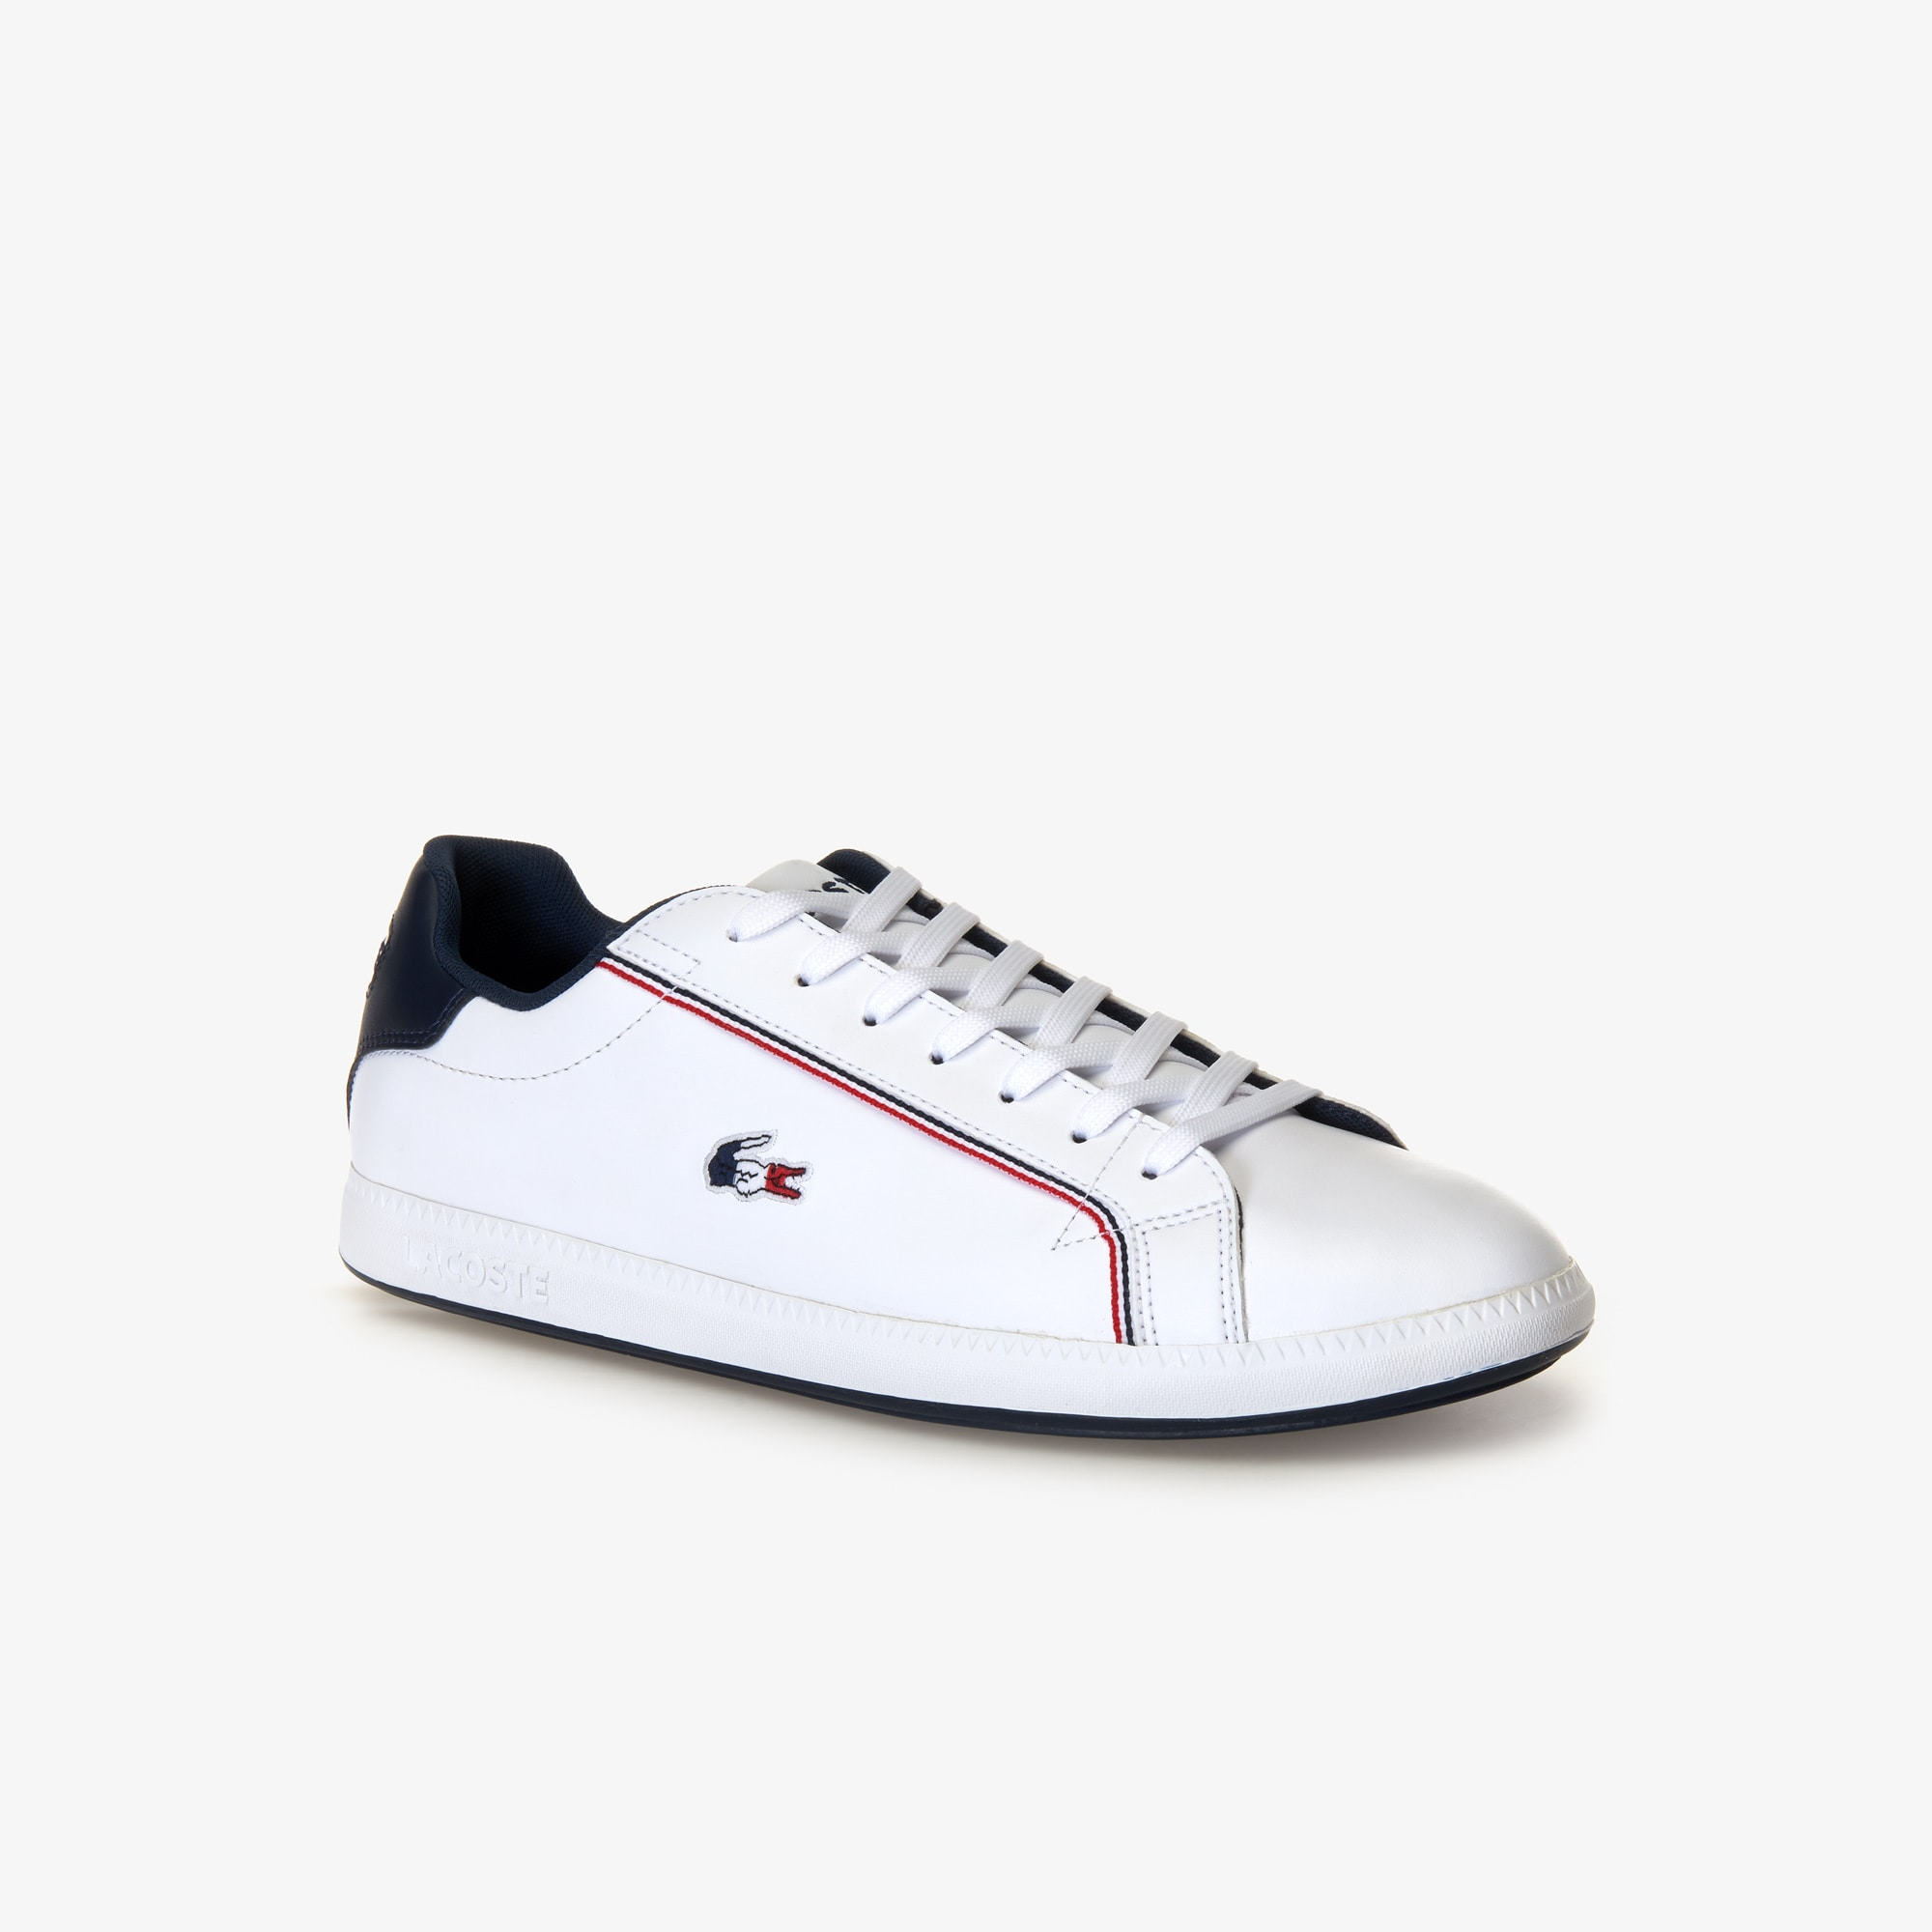 7febebf8ae3a Lacoste shoes for men  Sneakers